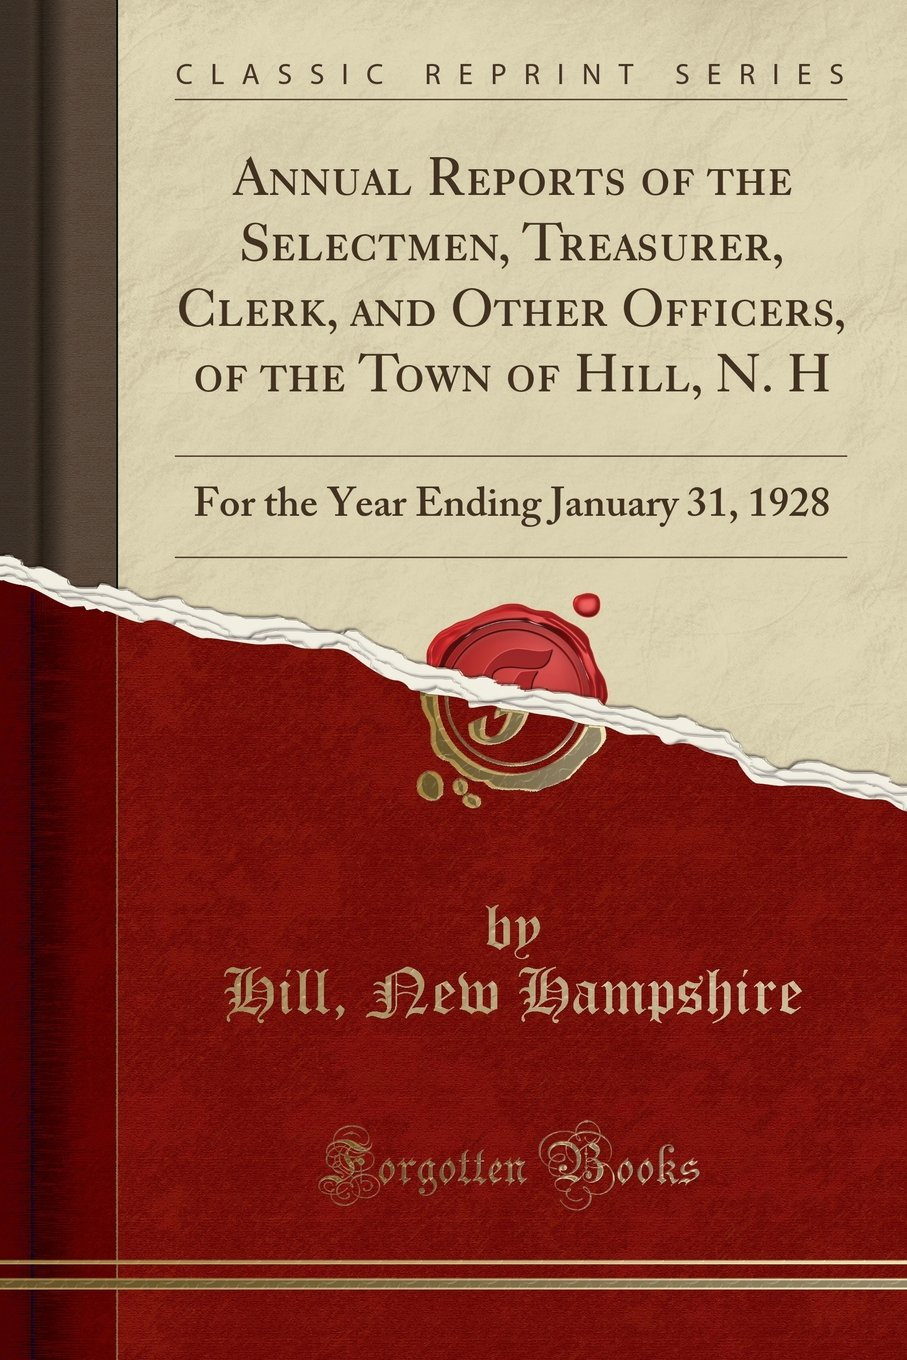 Annual Reports of the Selectmen, Treasurer, Clerk, and Other Officers, of the Town of Hill, N. H: For the Year Ending January 31, 1928 (Classic Reprint) ebook